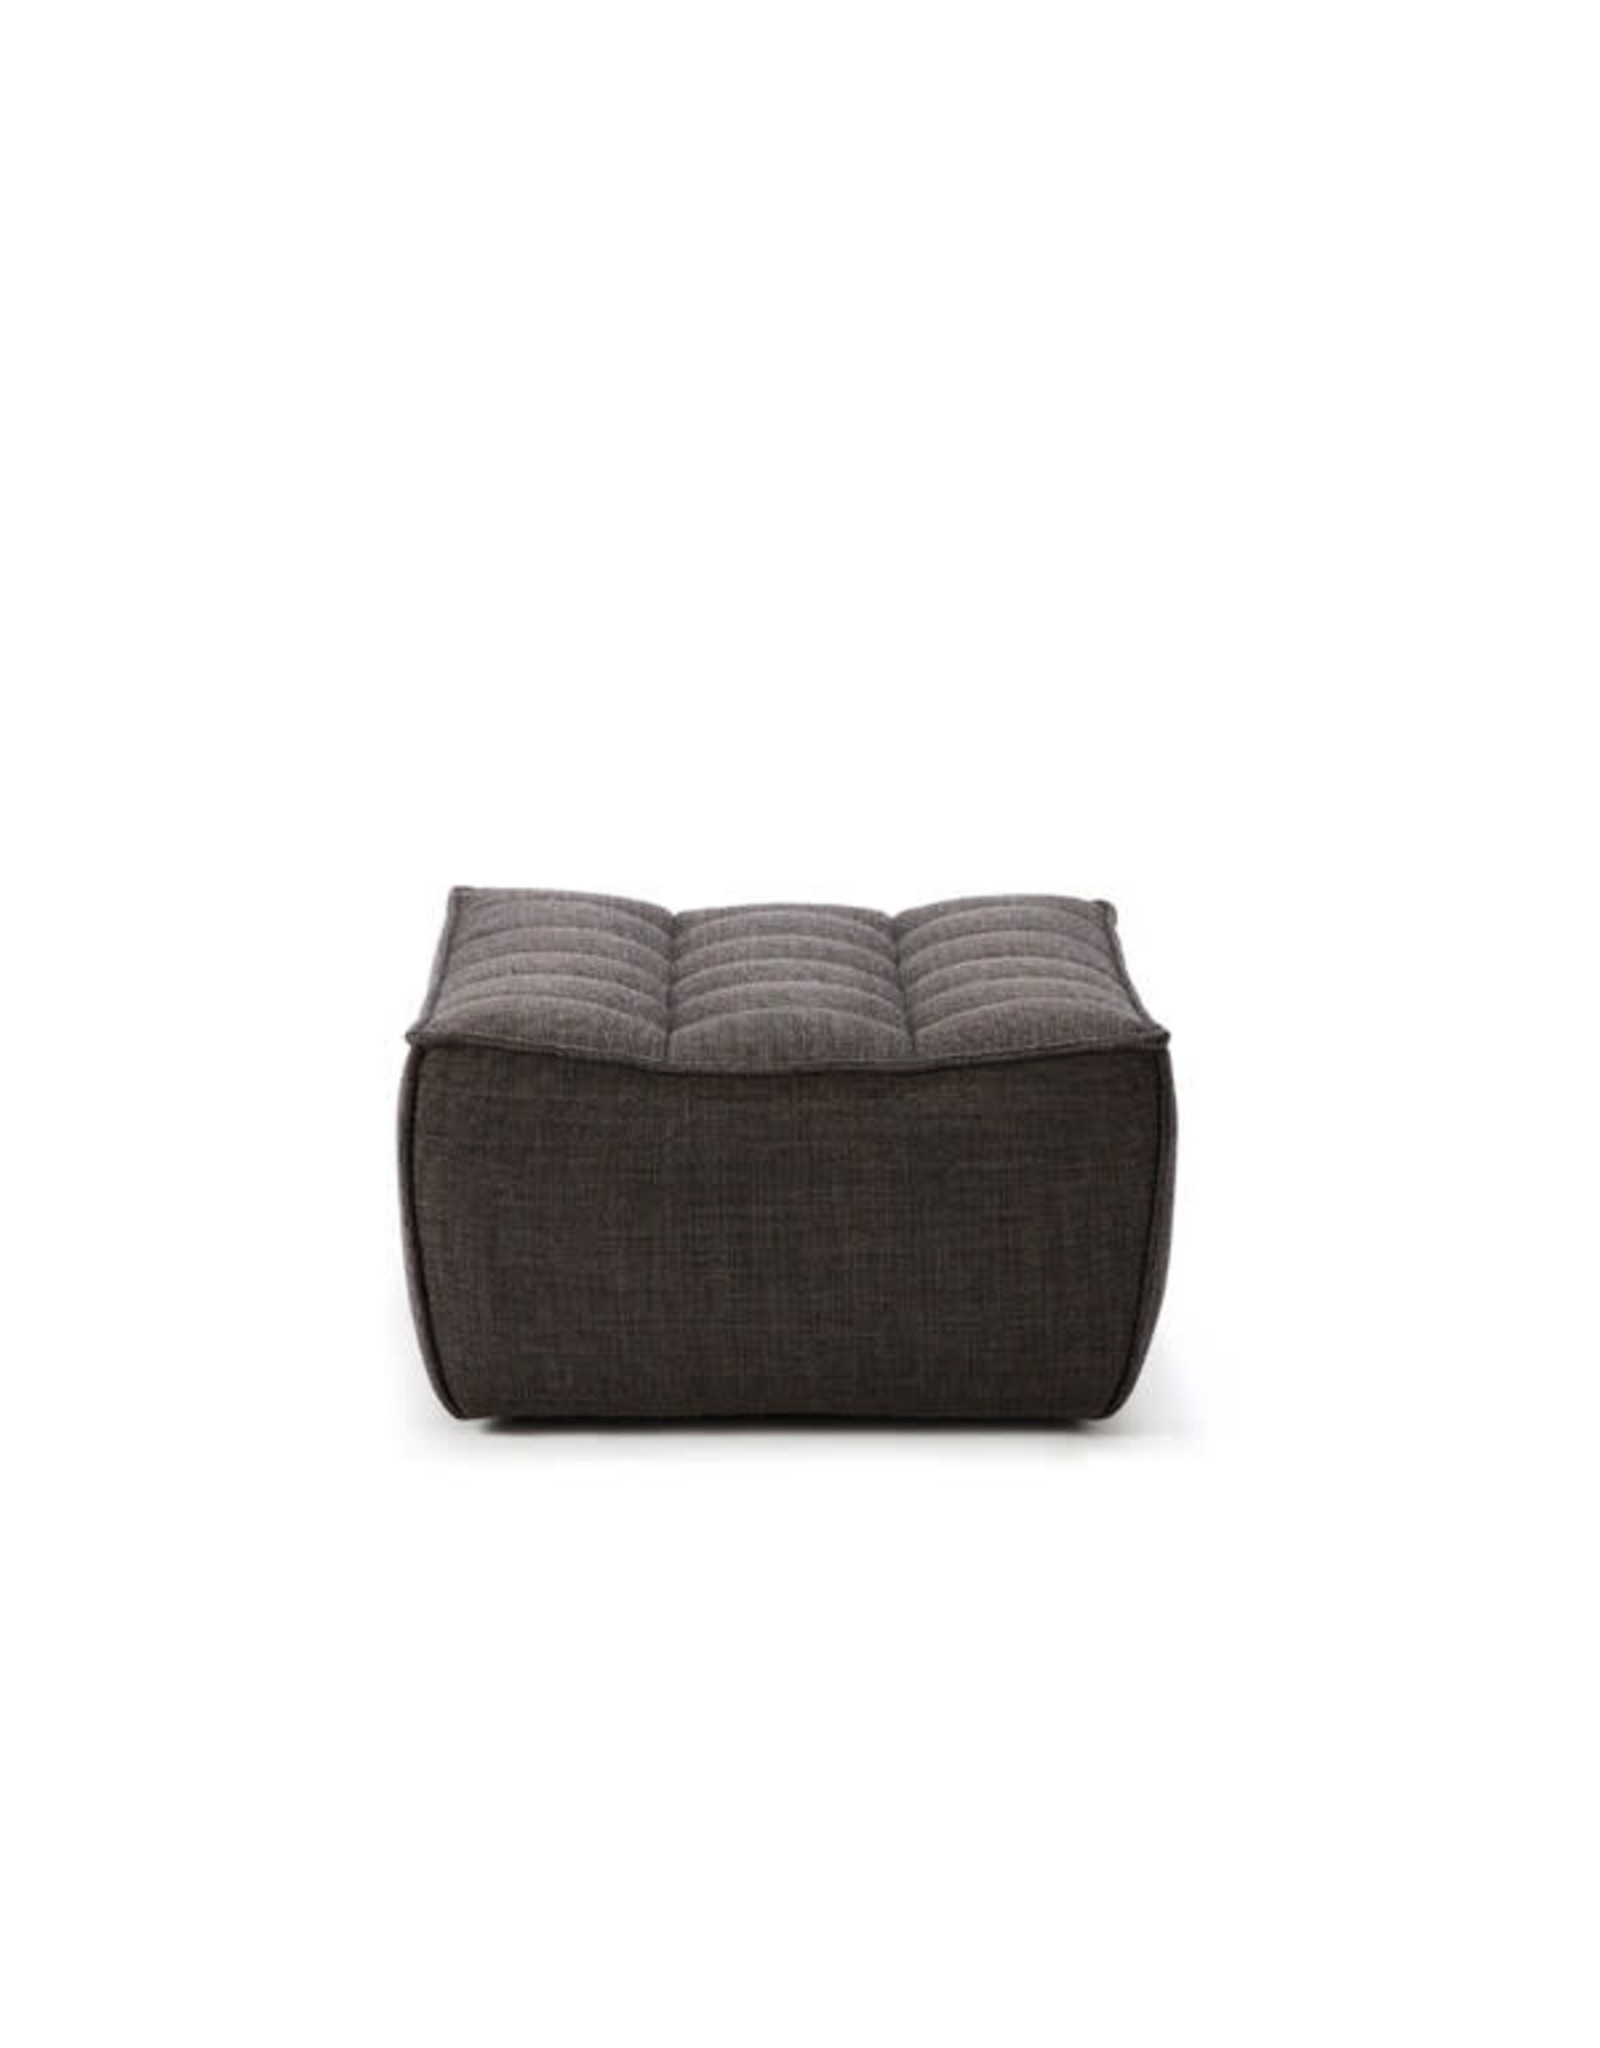 Ethnicraft N701 Footstool, Dark Grey